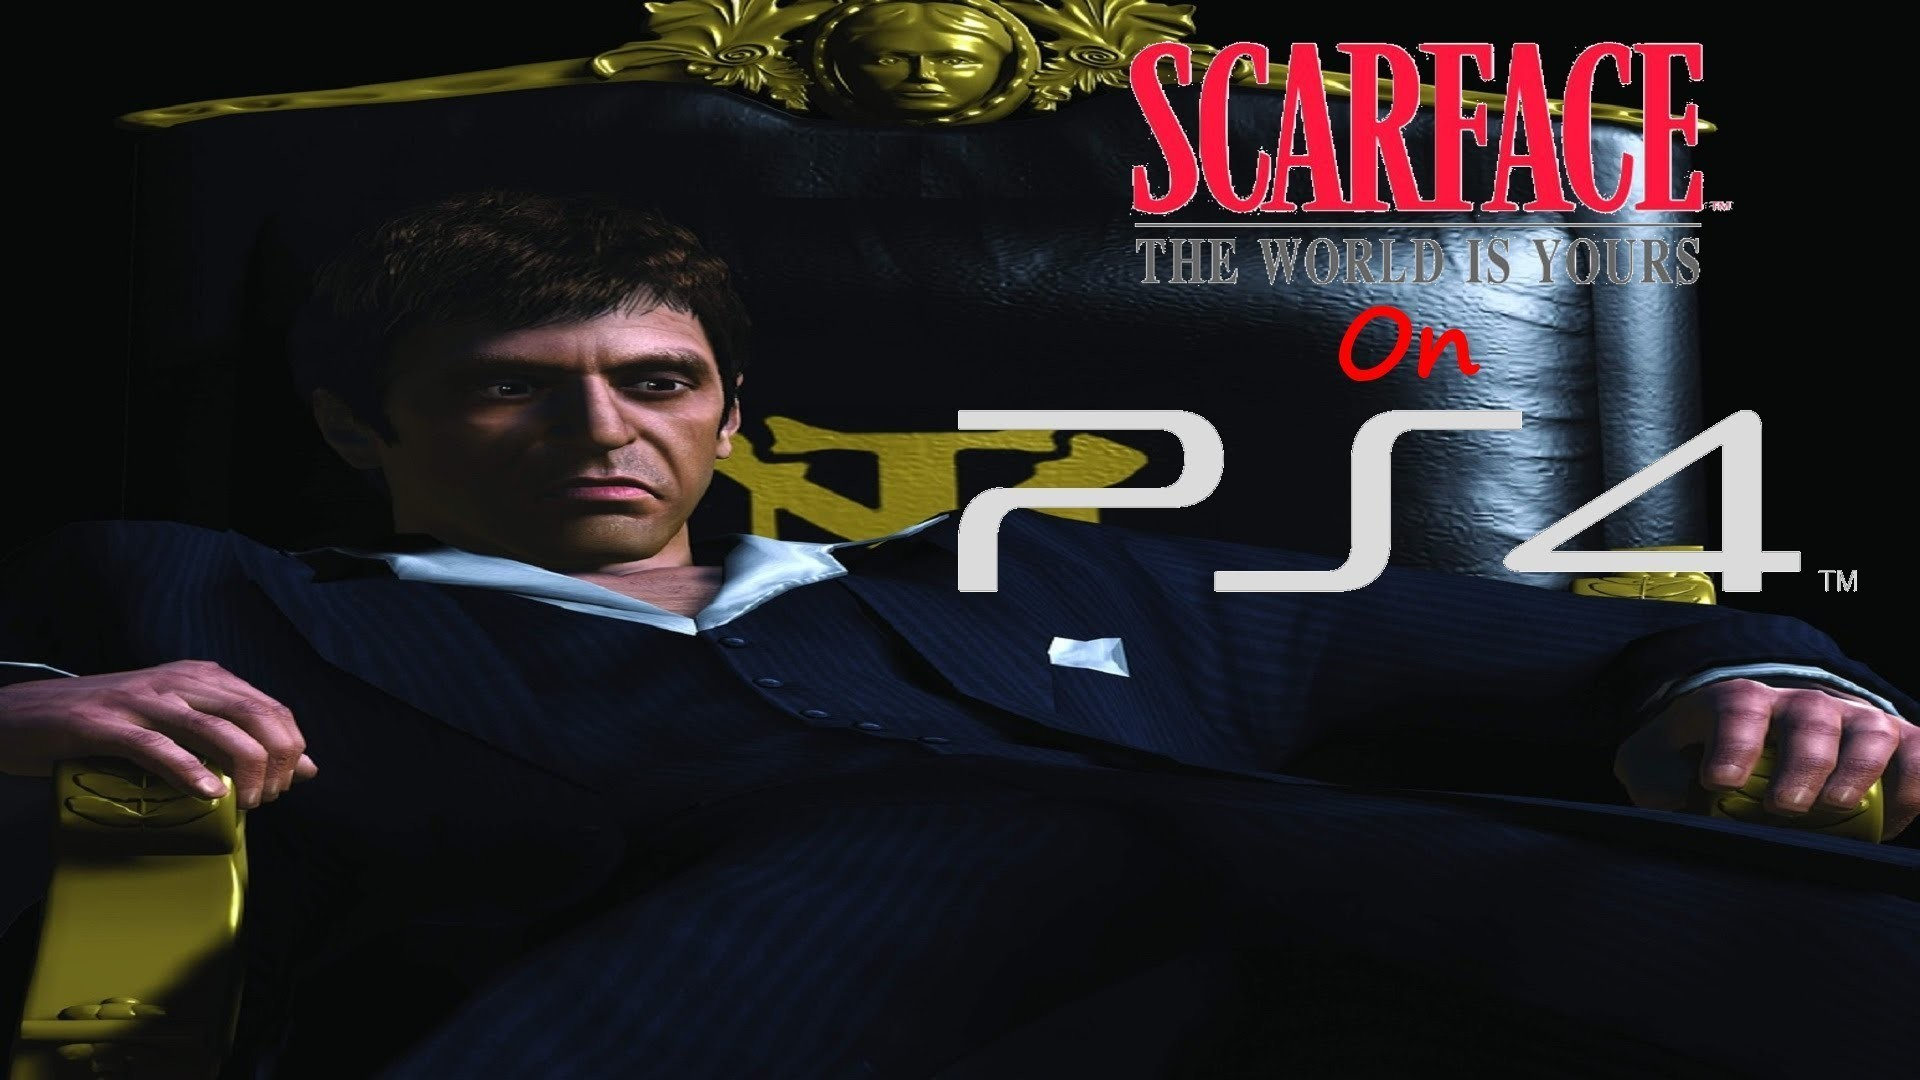 1920x1080 Movies Wallpaper Download The Following Scarface HD